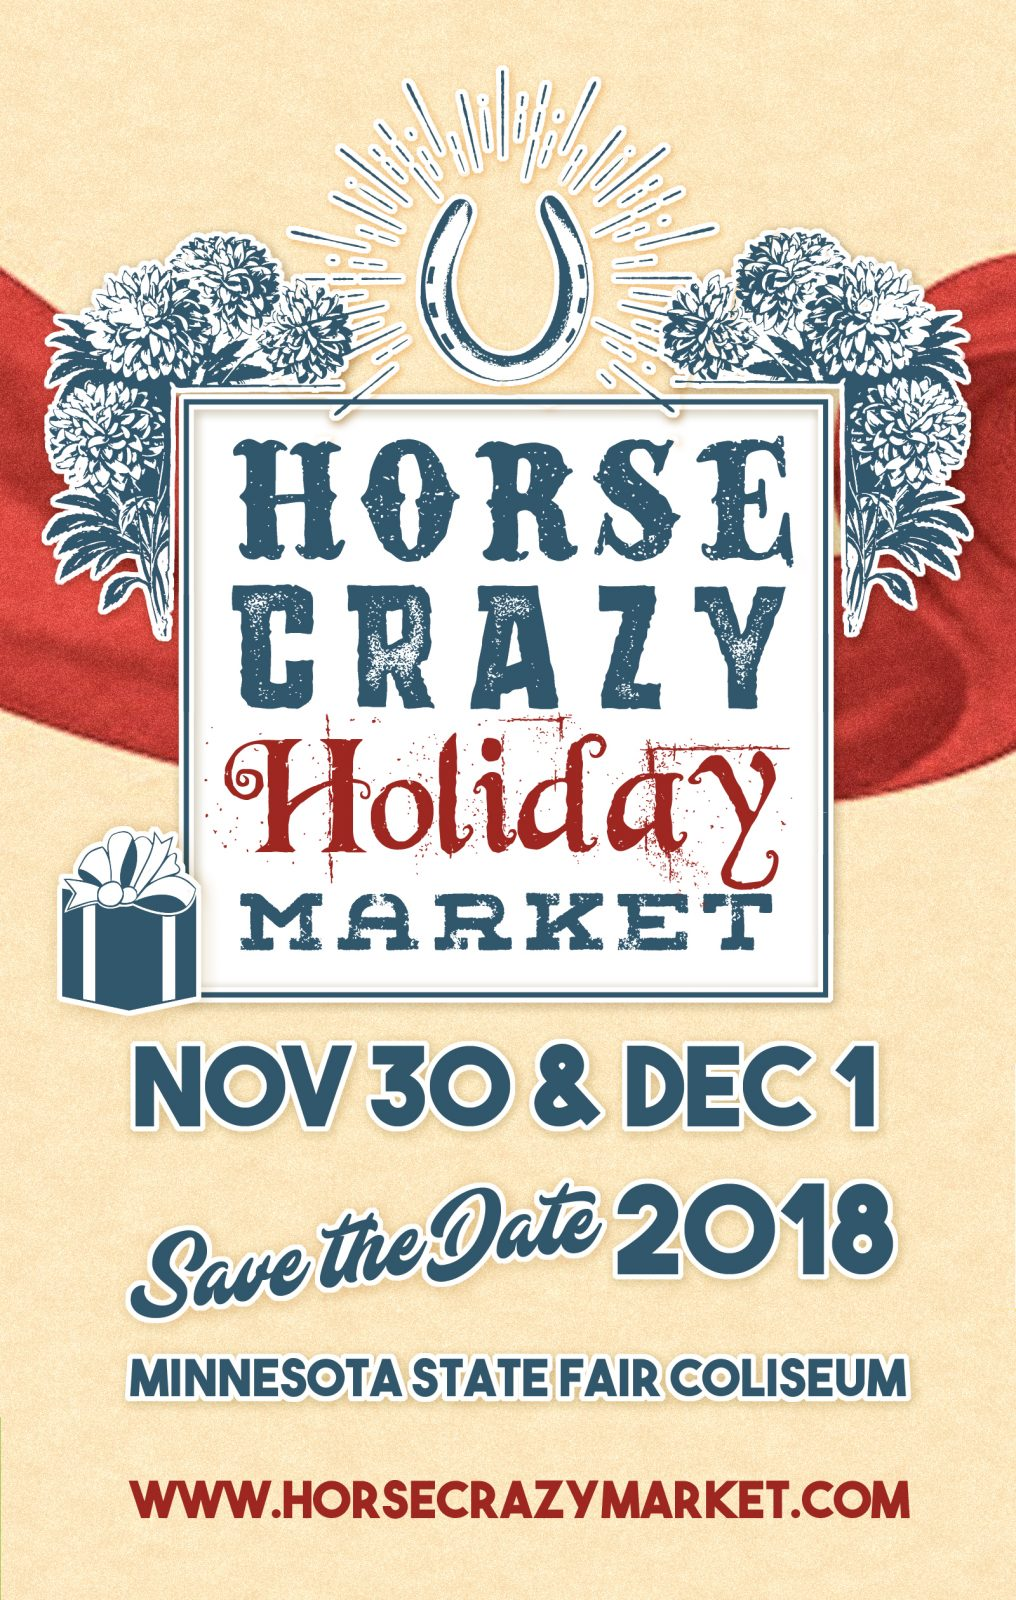 Meet Dusty at the Horse Crazy Holiday Market!